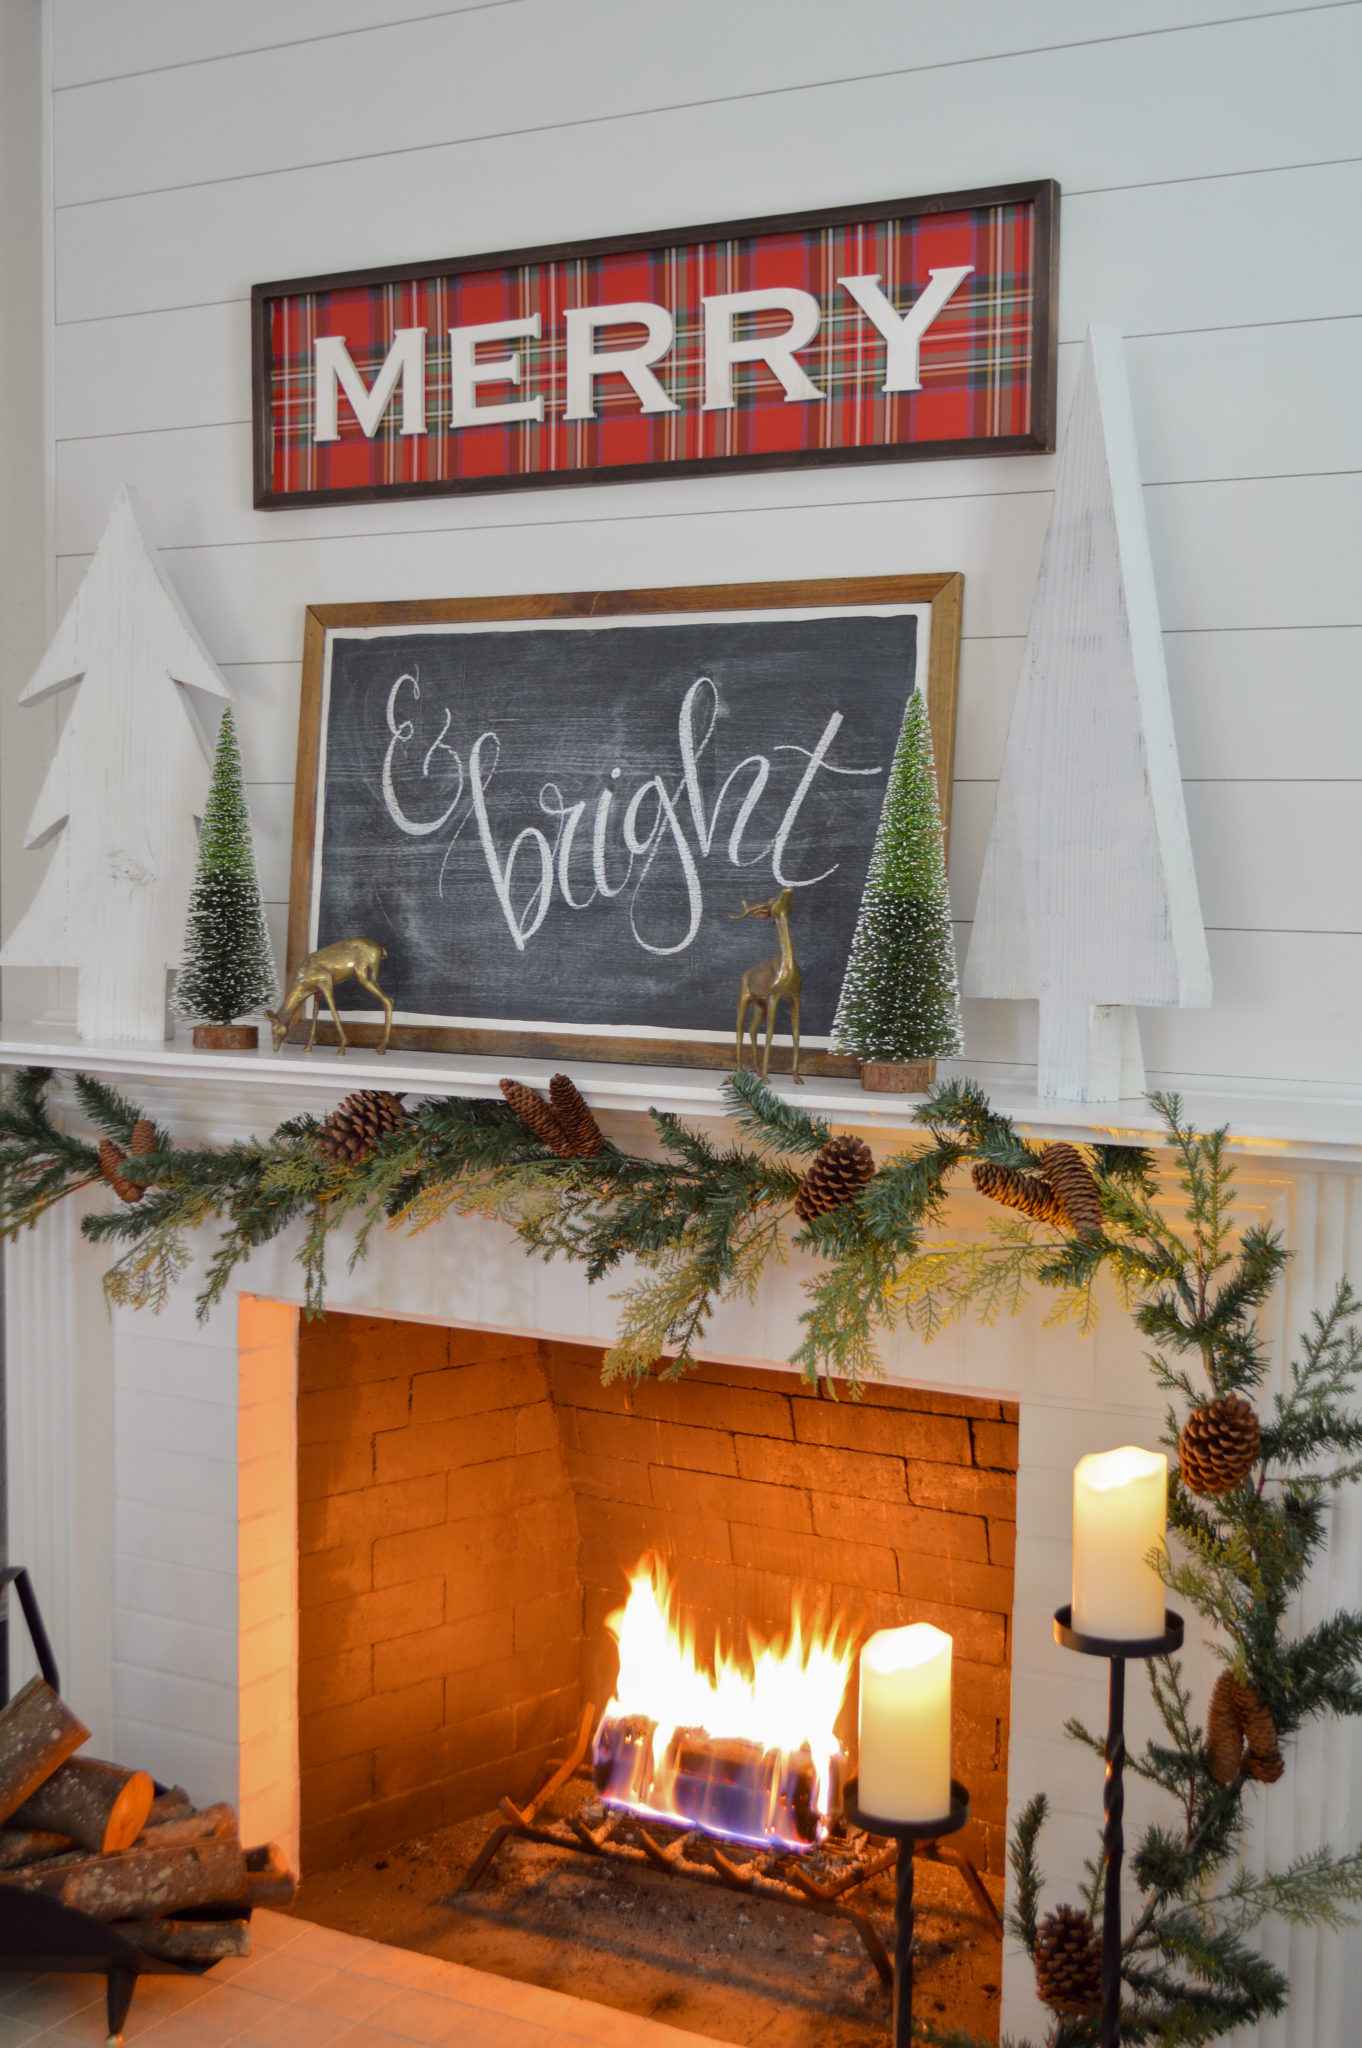 Love the combination of a Christmas sign paired with a chalkboard #christmasdecor #christmasdecorating #christmasmantel #christmaschalkboard #chalkart #christmasgarland #diychristmas #fireplace #shiplap